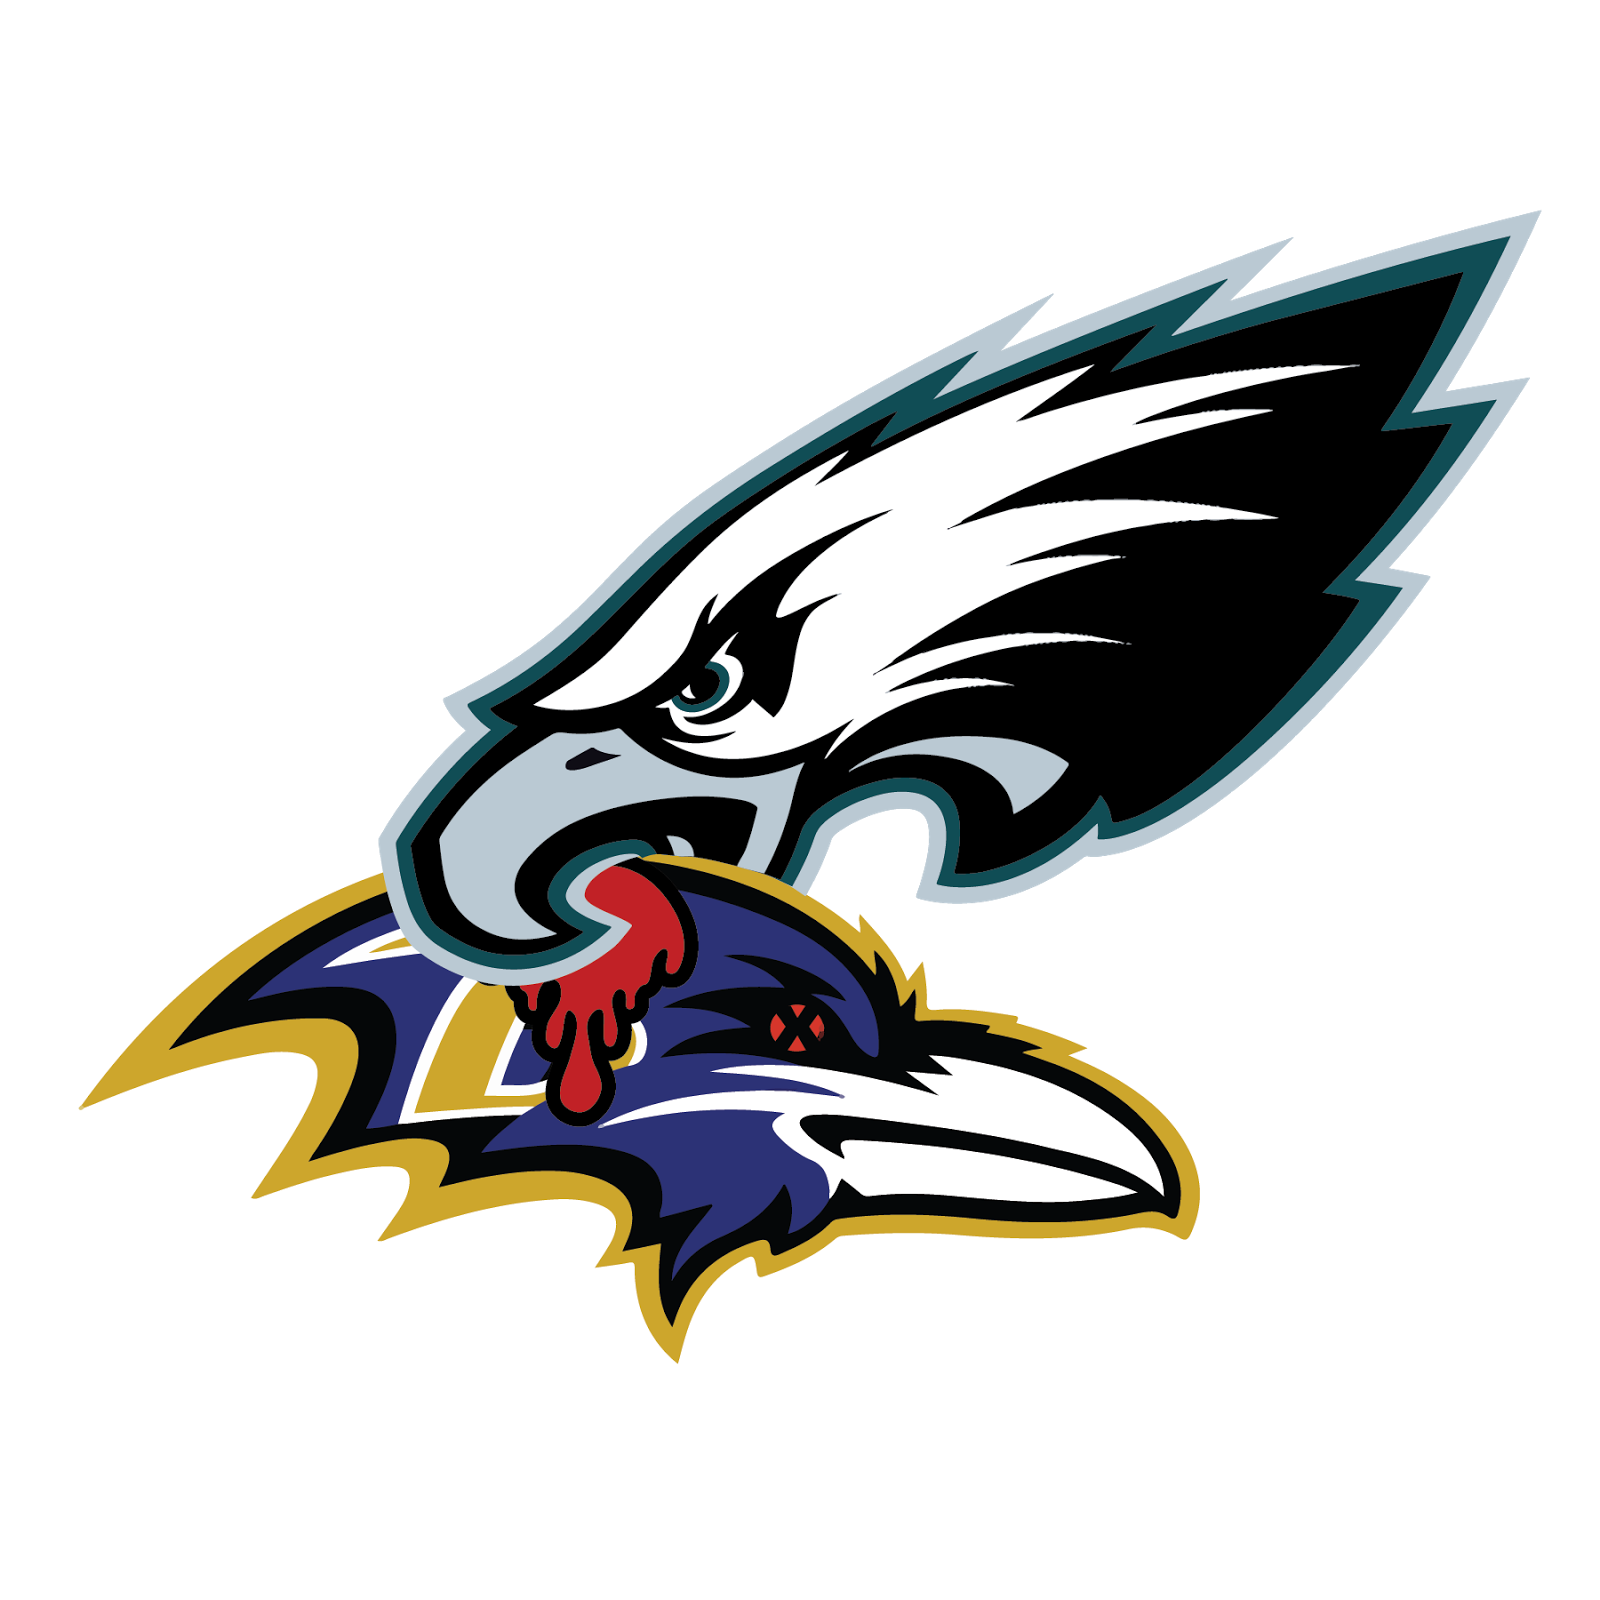 12 Philadelphia Eagle Logo Design Images